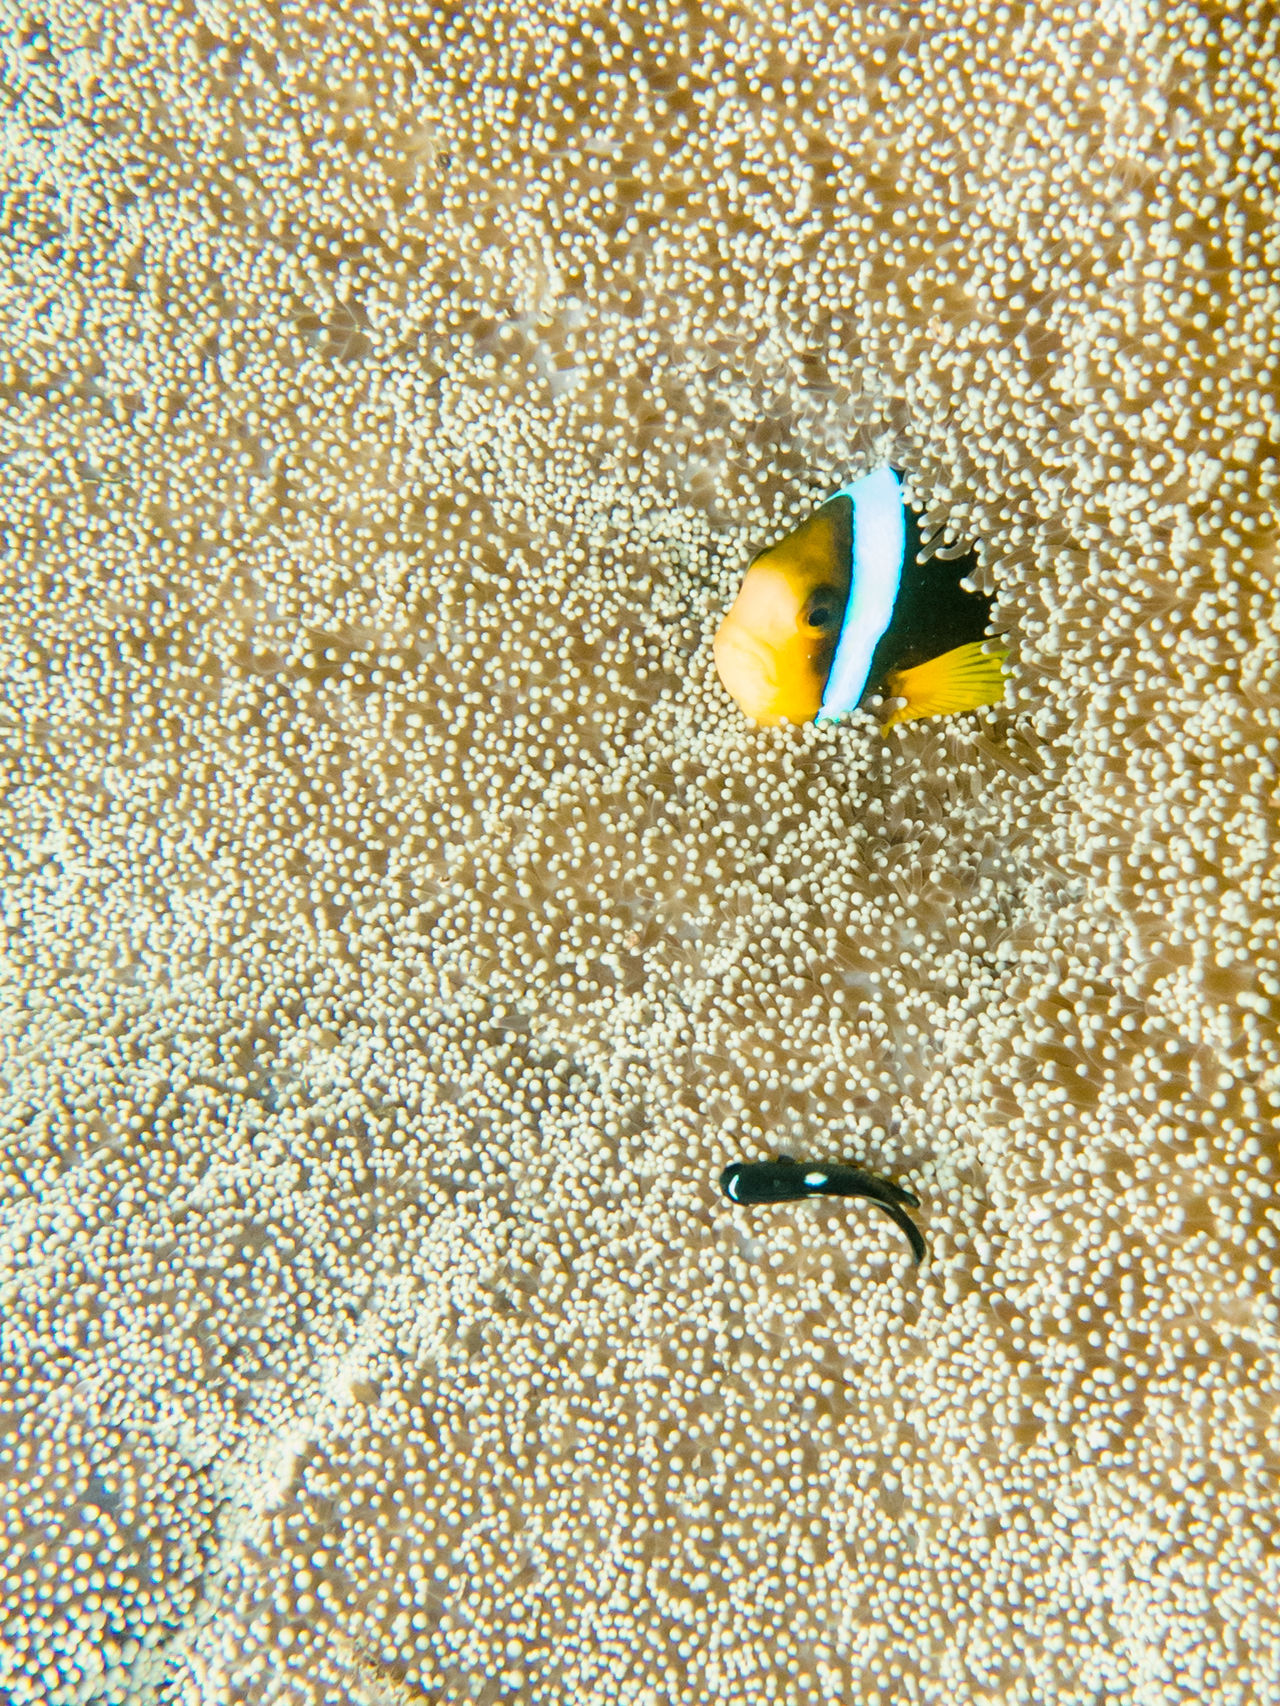 Anemone Animal Themes Beach Close-up Clownfish Day Fish Gold Colored Nature Nature_collection No People Ocean Outdoors Sand SCUBA Scuba Diving Scubadiving Textured  UnderSea Underwater Underwater Photography Underwater World Underwaterphotography Wildlife Yellow